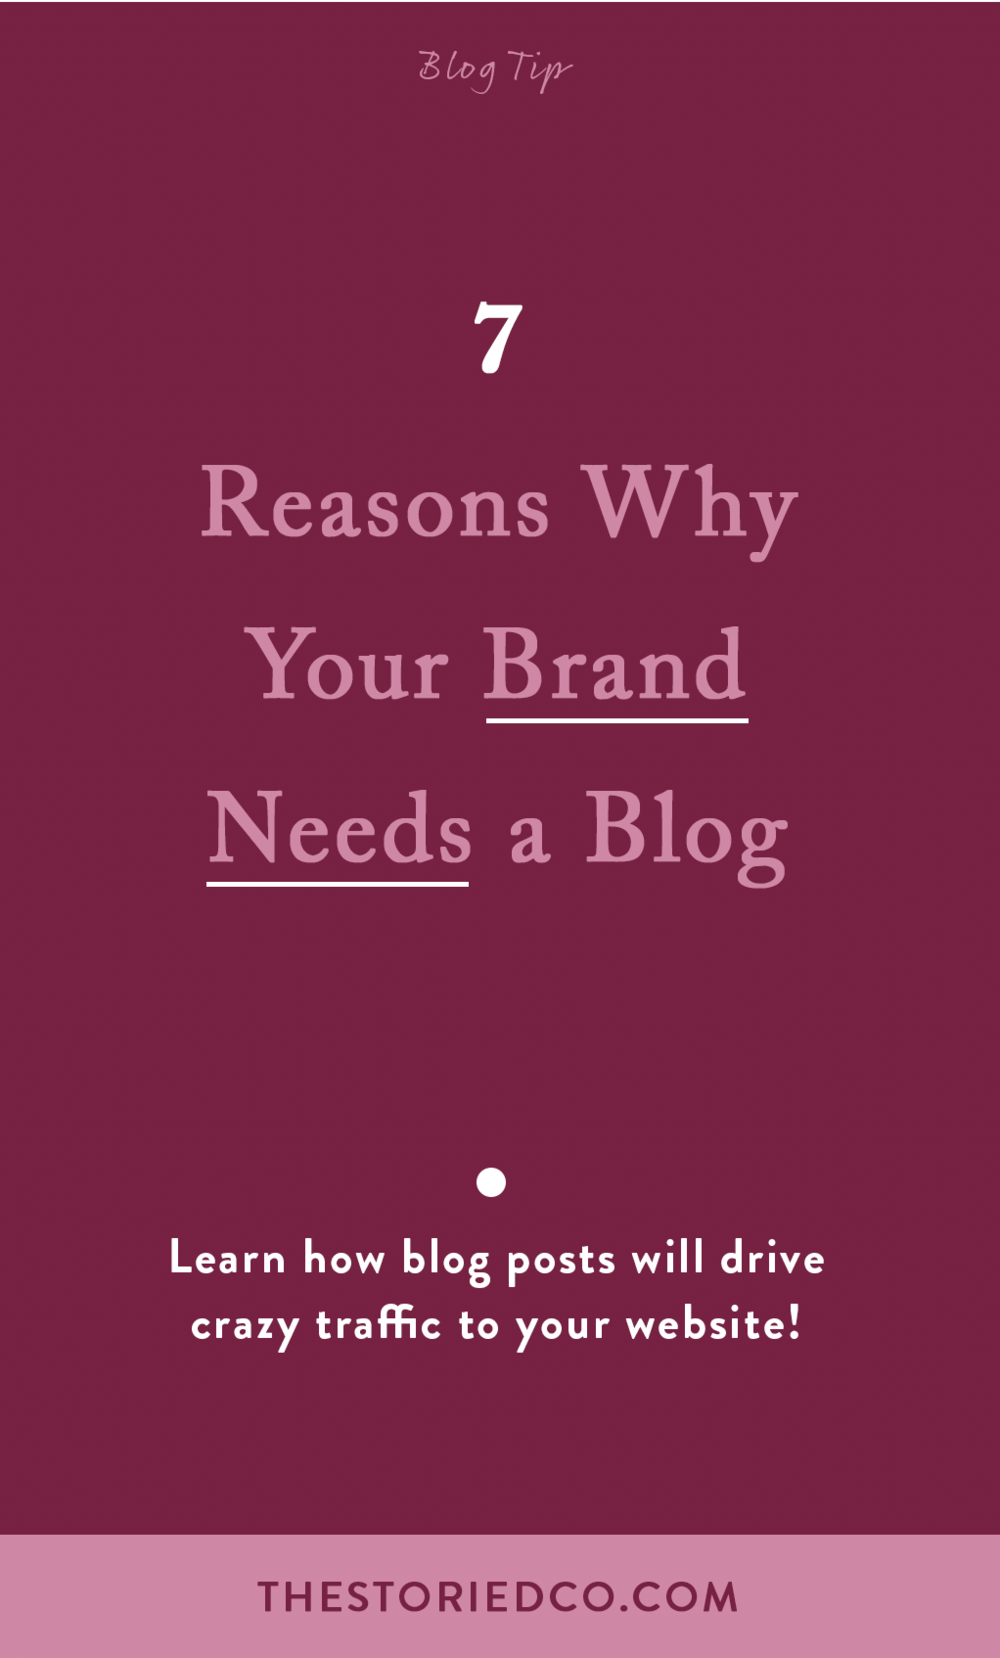 7-reasons-why-your-brand-needs-a-blog-thestoriedco.png